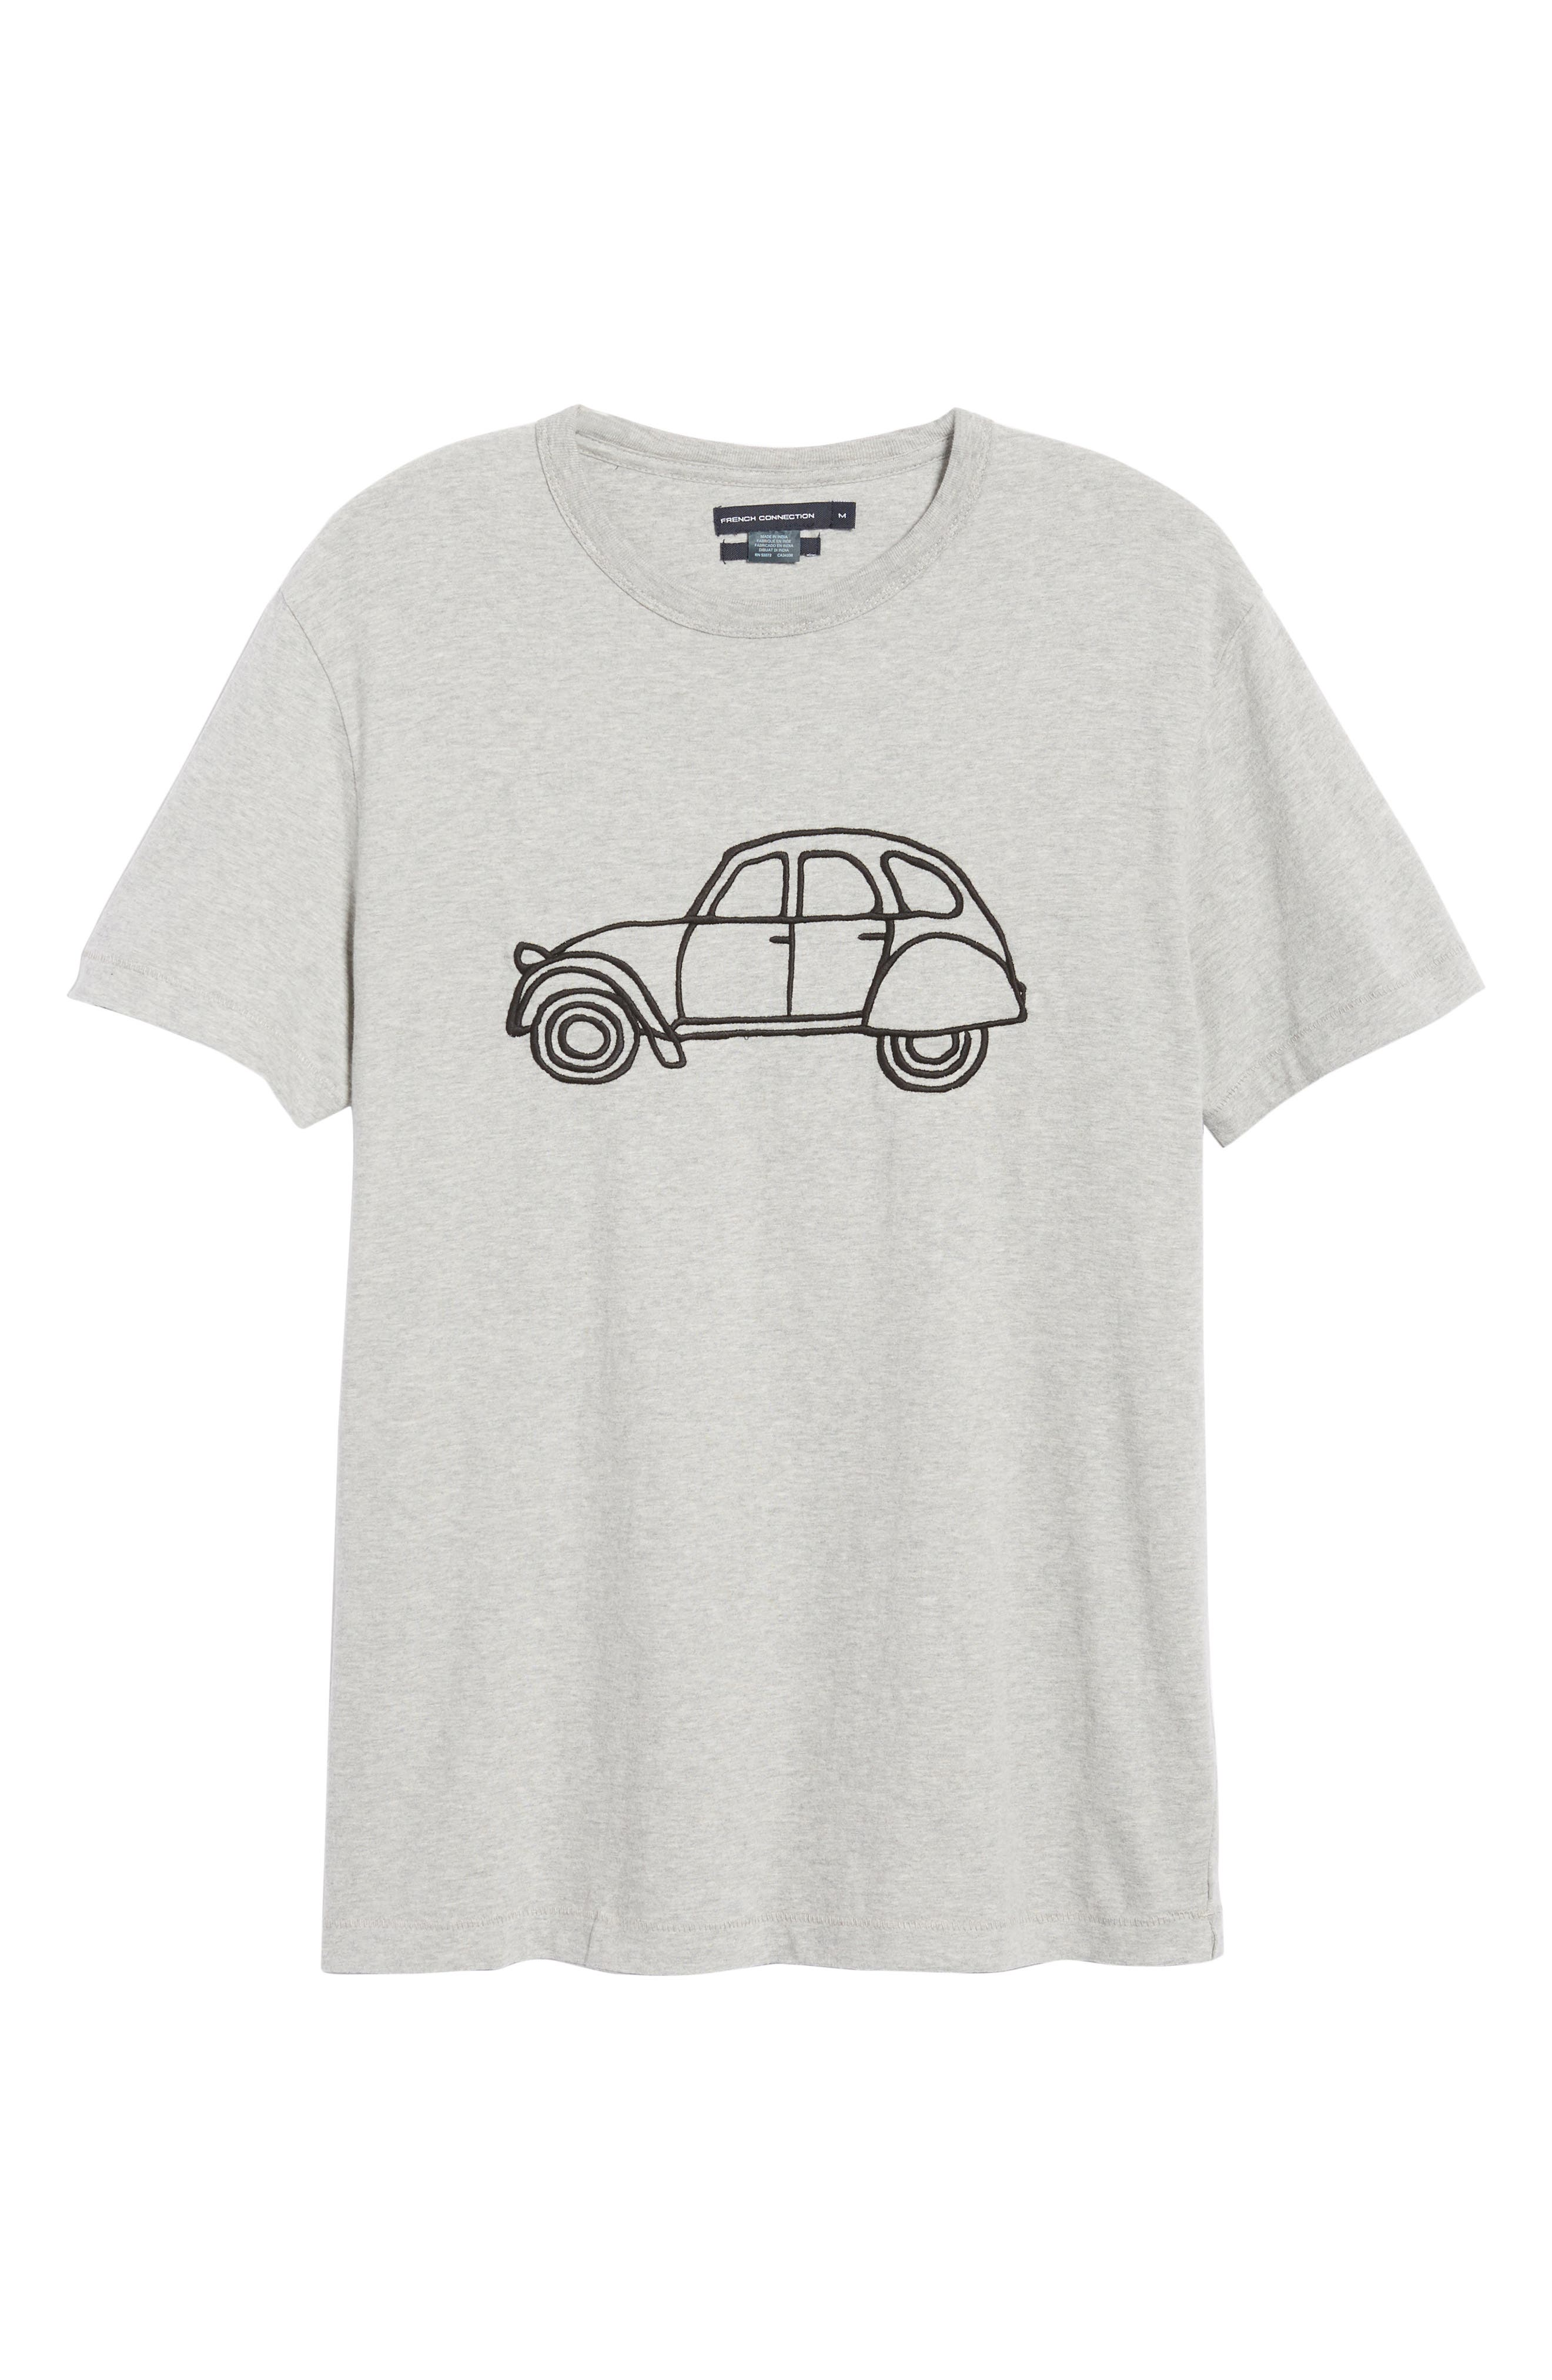 FRENCH CONNECTION,                             Embroidered Car Cotton T-Shirt,                             Alternate thumbnail 6, color,                             020